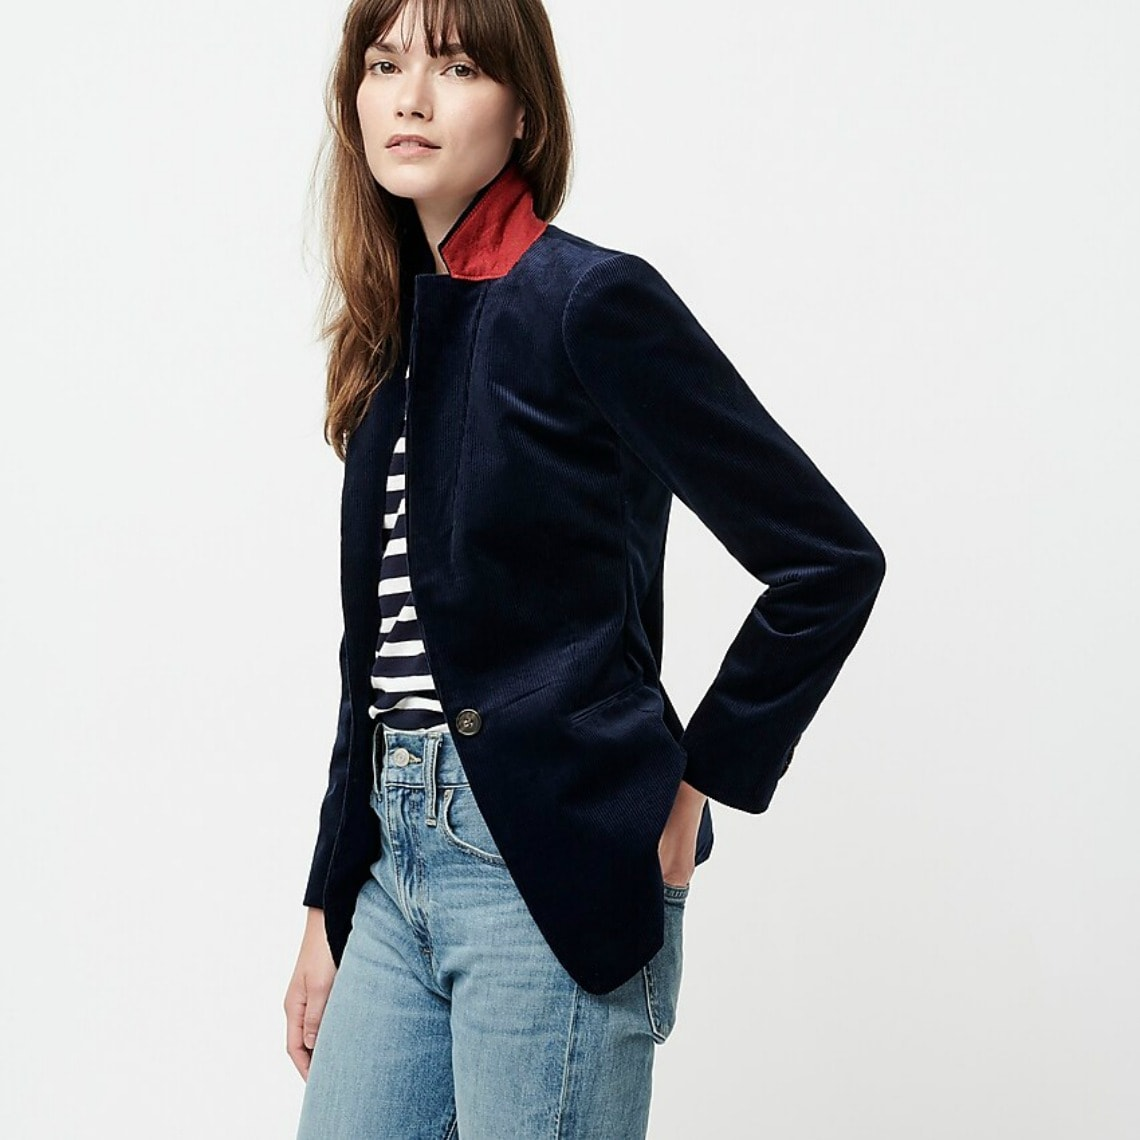 navy corduroy jacket from J.Crew on A Well Styled Life